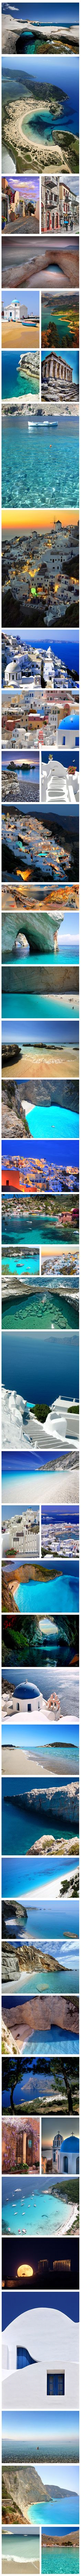 """""""Part 1 of 2 - 100 Most Stunning Images of Greece"""" #Greece"""